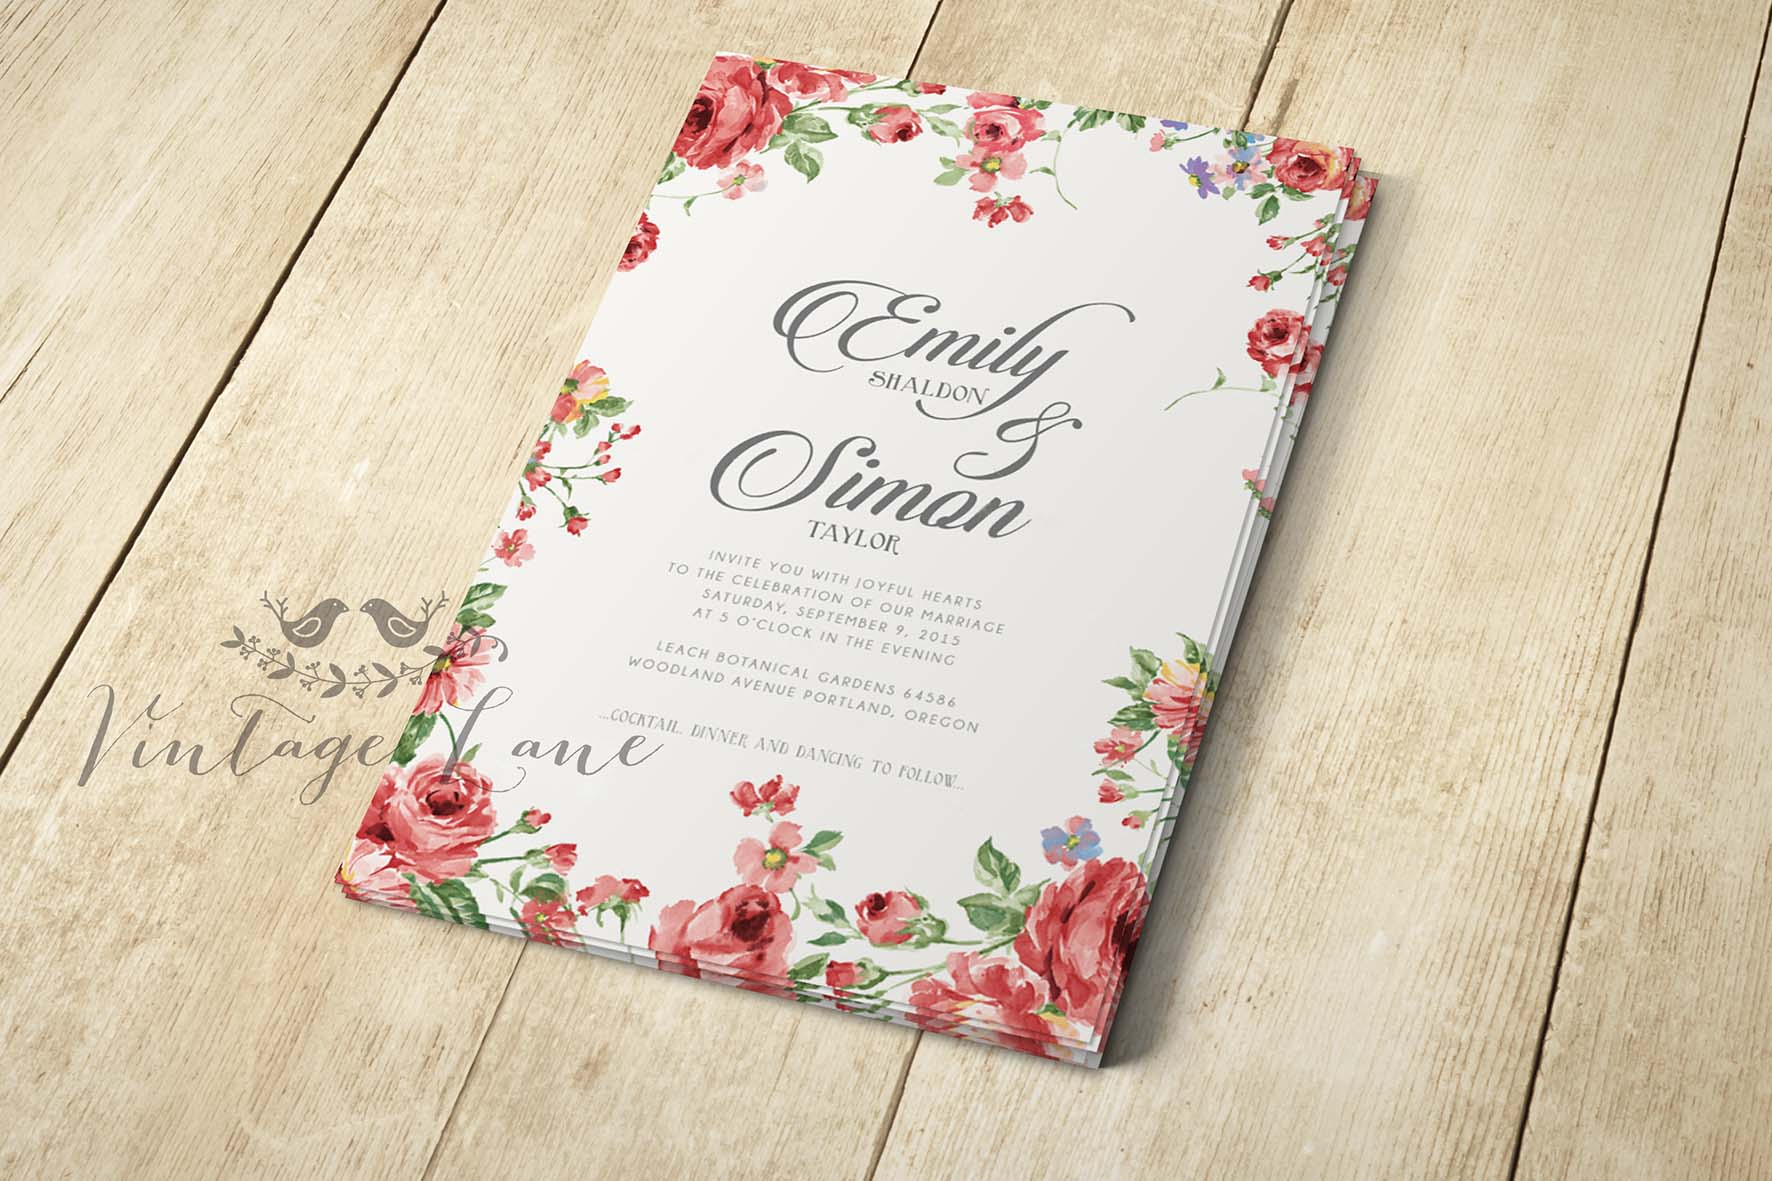 Fl Rose Wedding Invitations Cork Ireland Vintage Lane